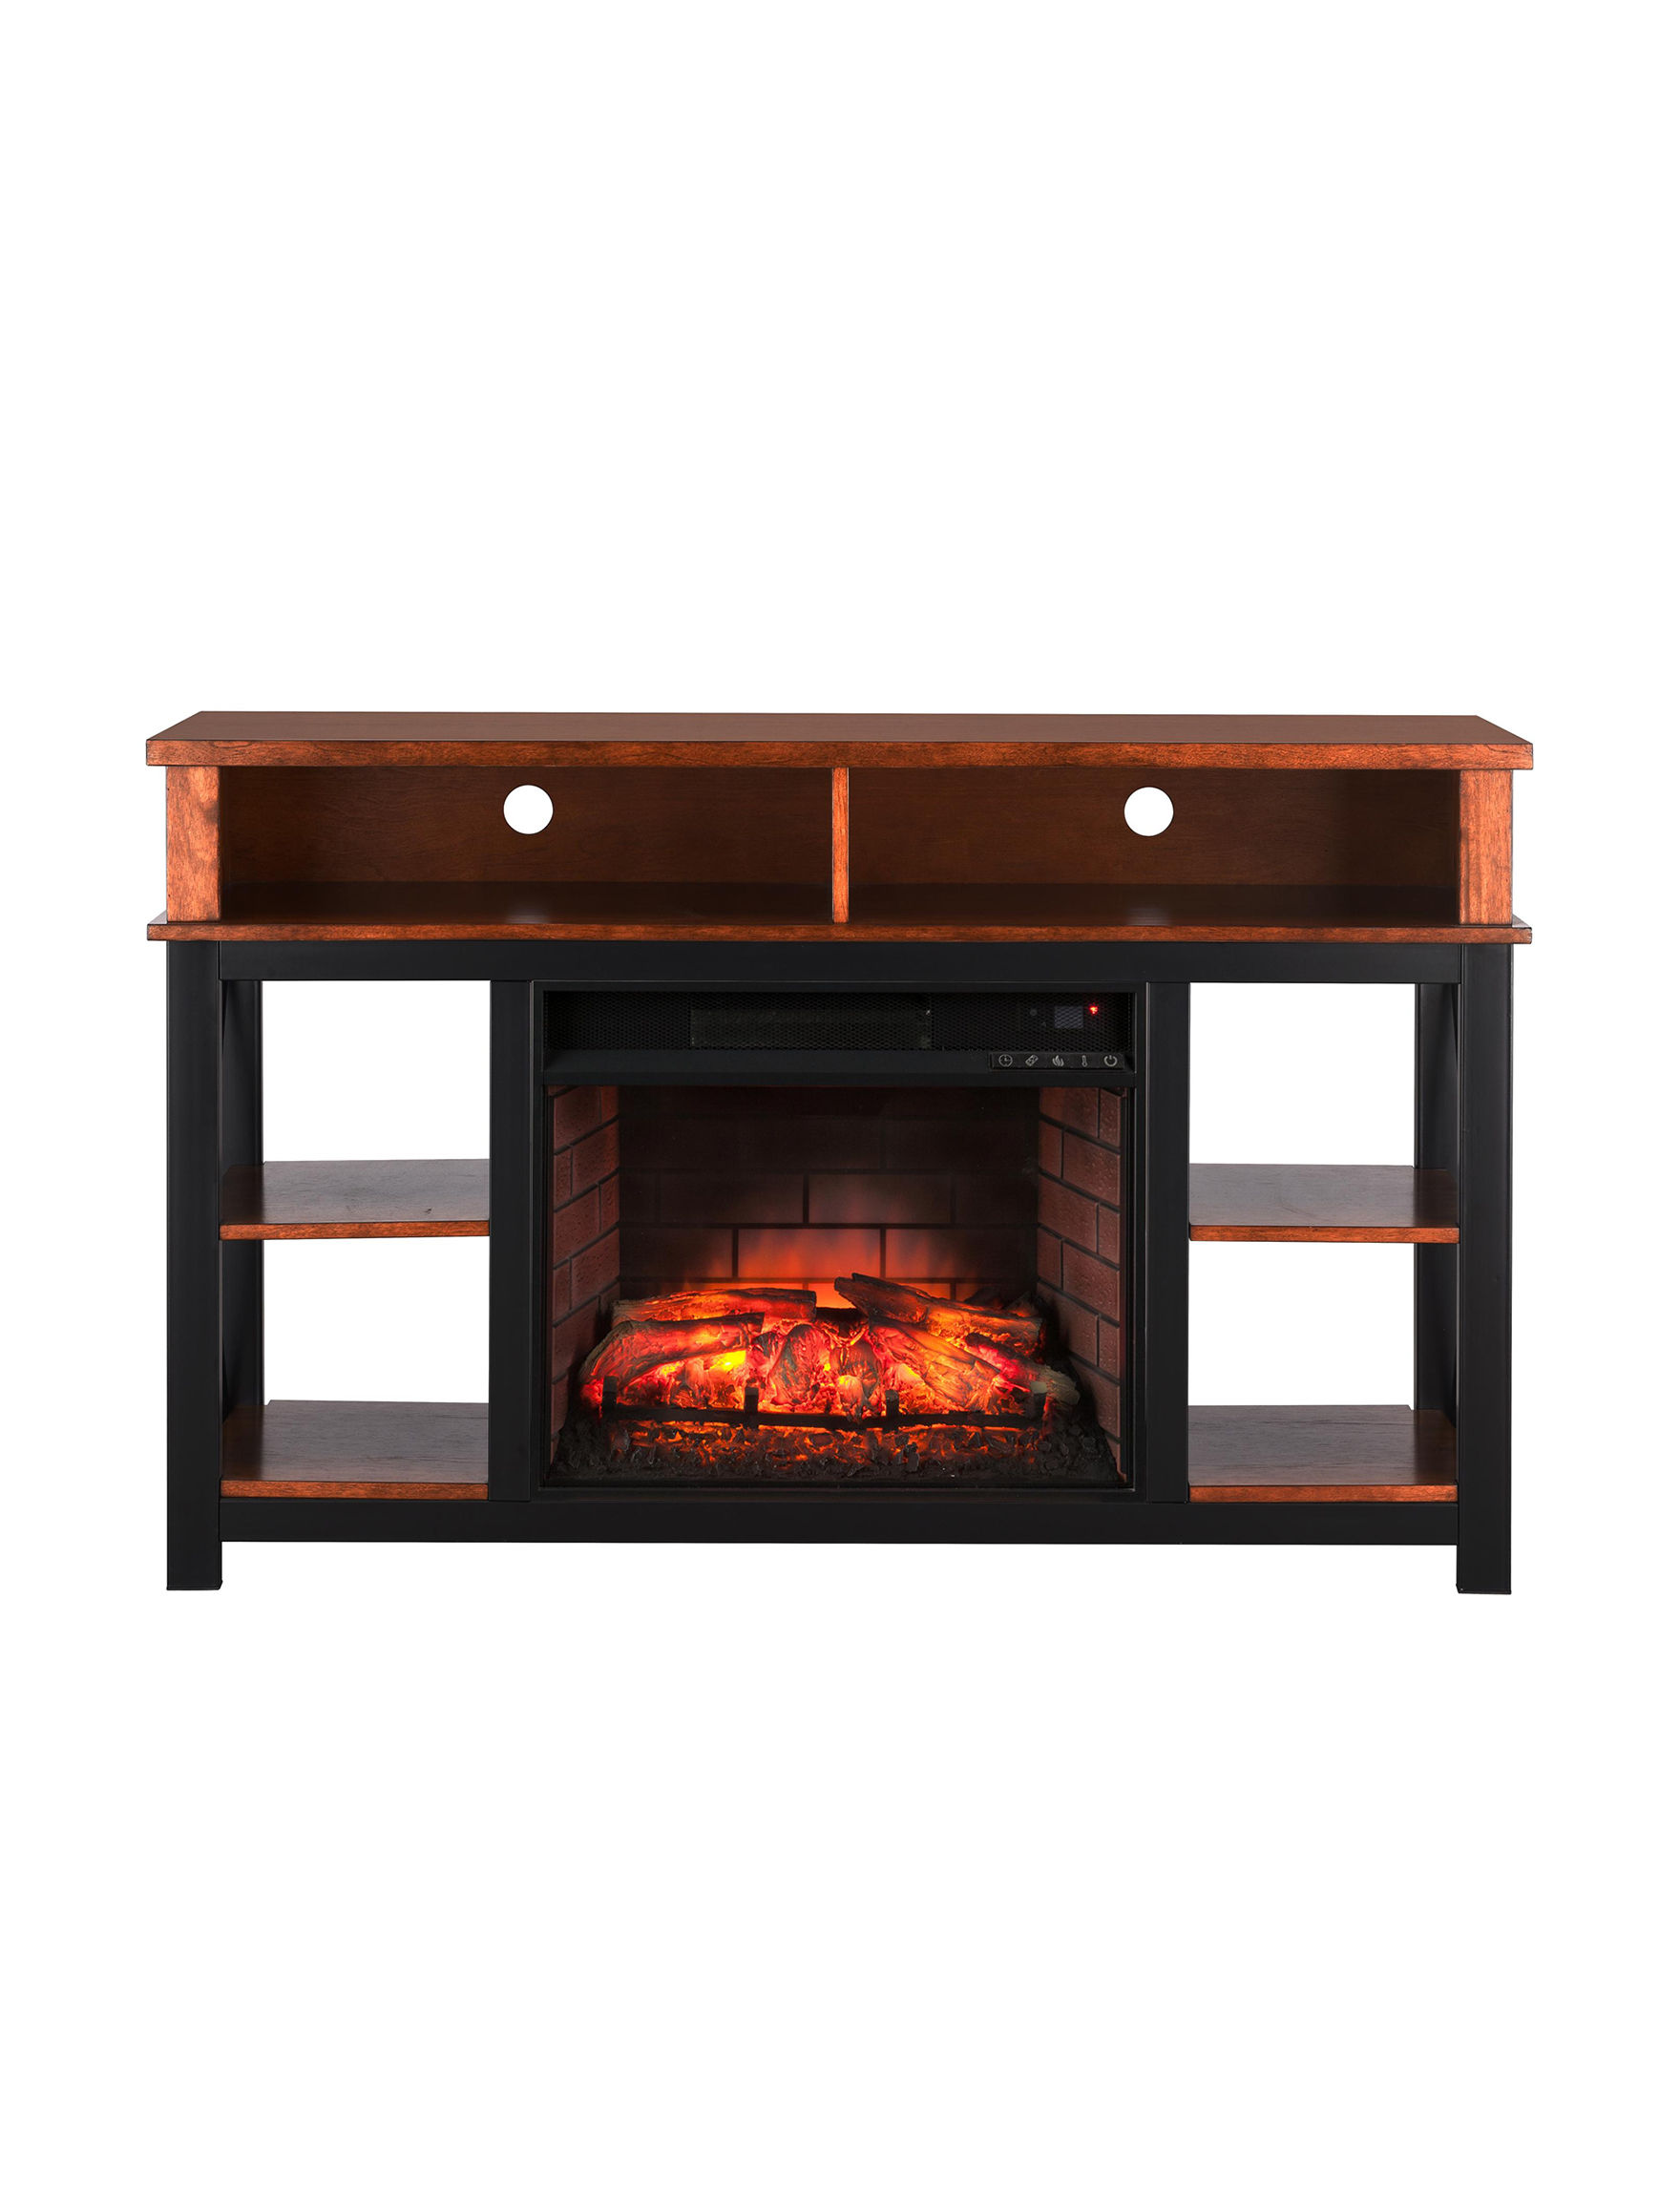 Southern Enterprises Black TV Stands & Entertainment Centers Game Room Living Room Furniture